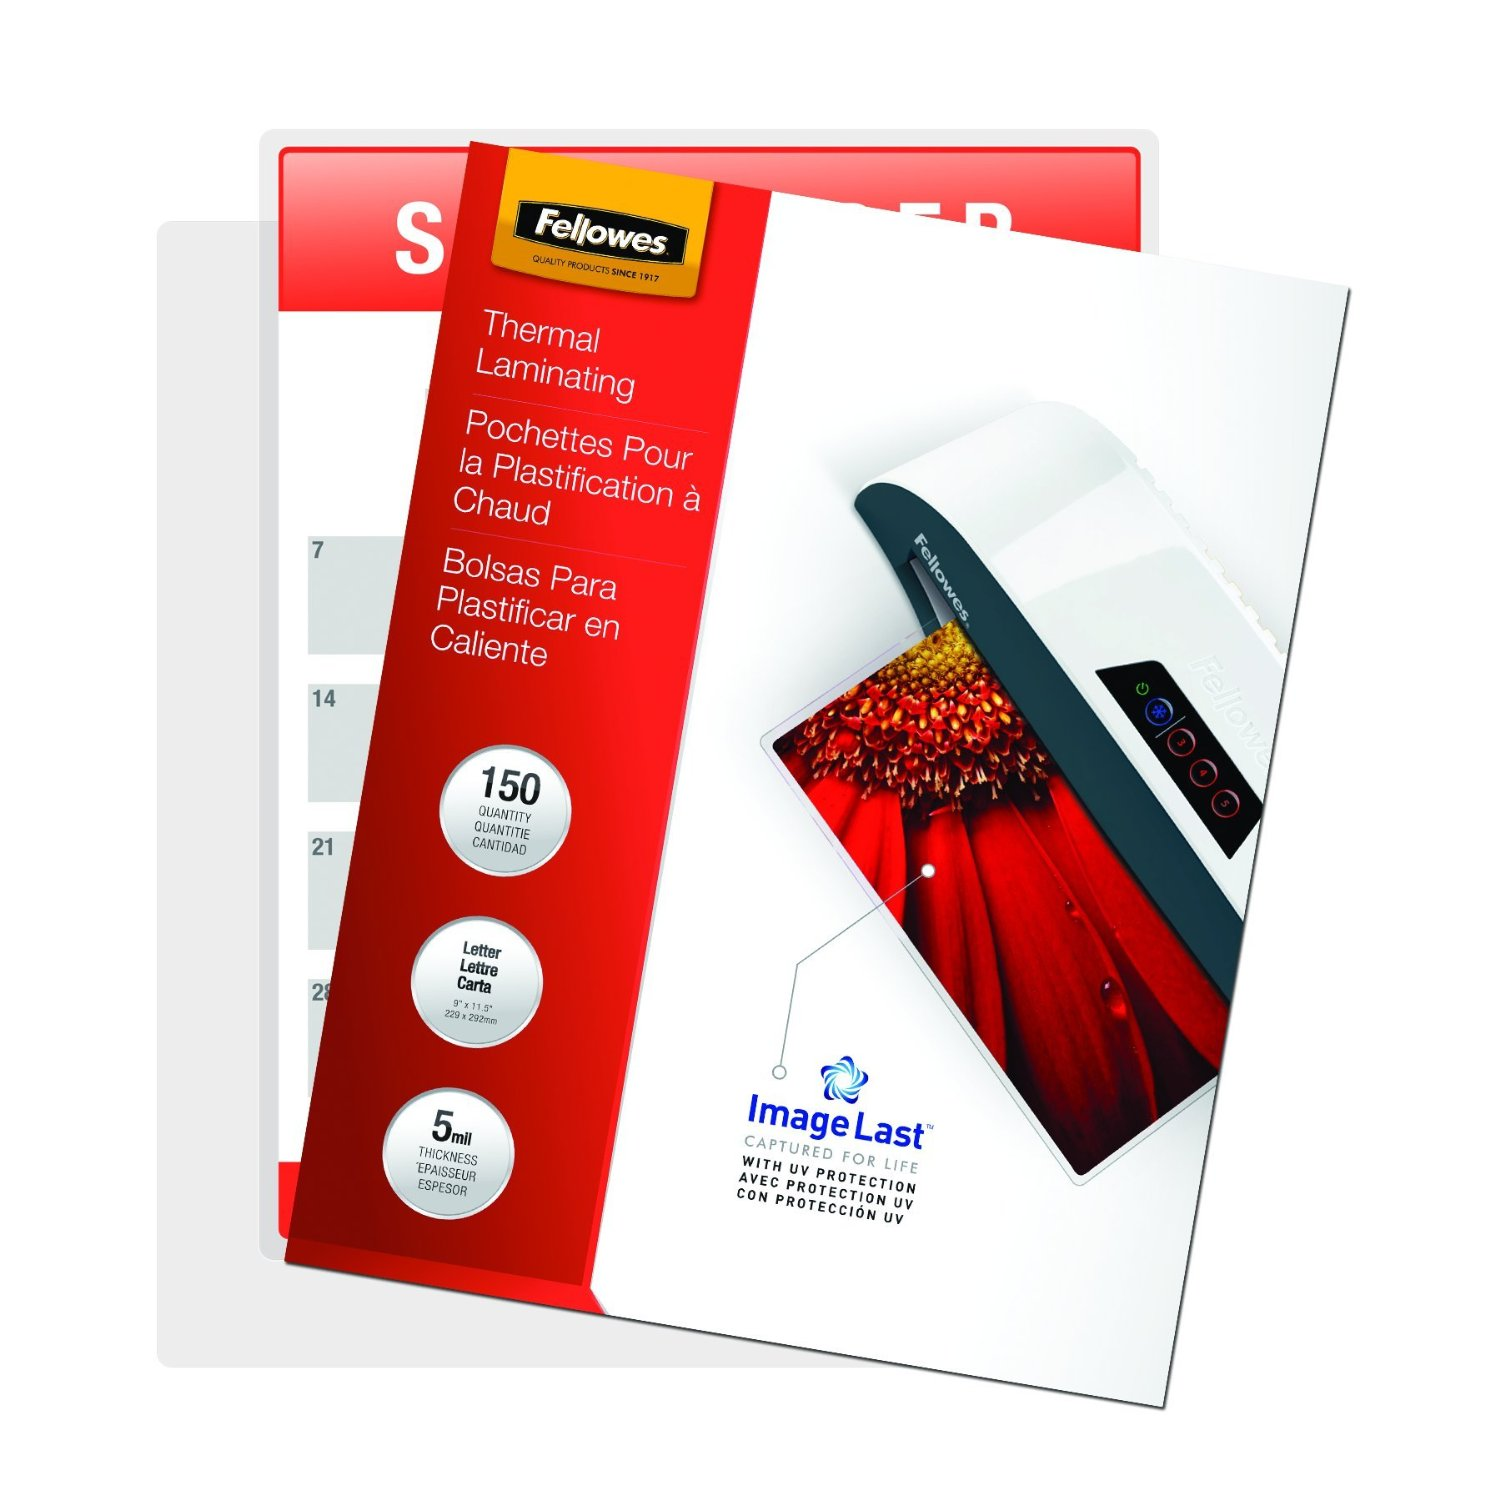 fellowes laminating pouches thermal imagelast letter With fellowes letter size laminating pouches 5 mil 150 pack